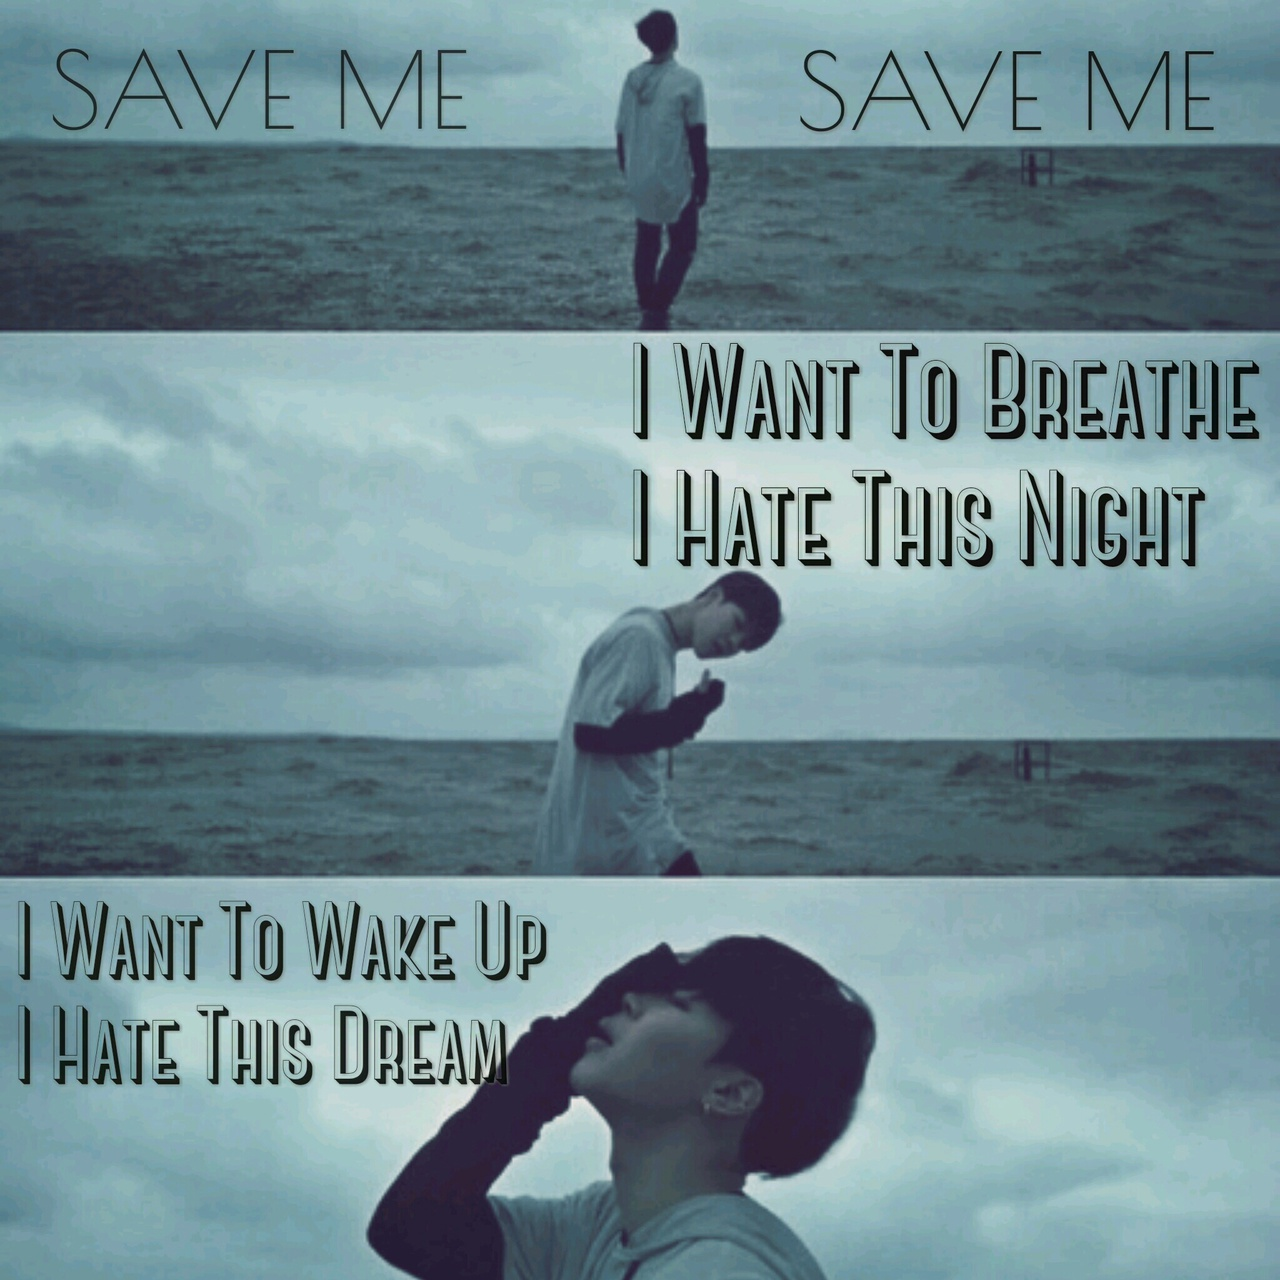 bts save me lyrics shared by sara on we heart it